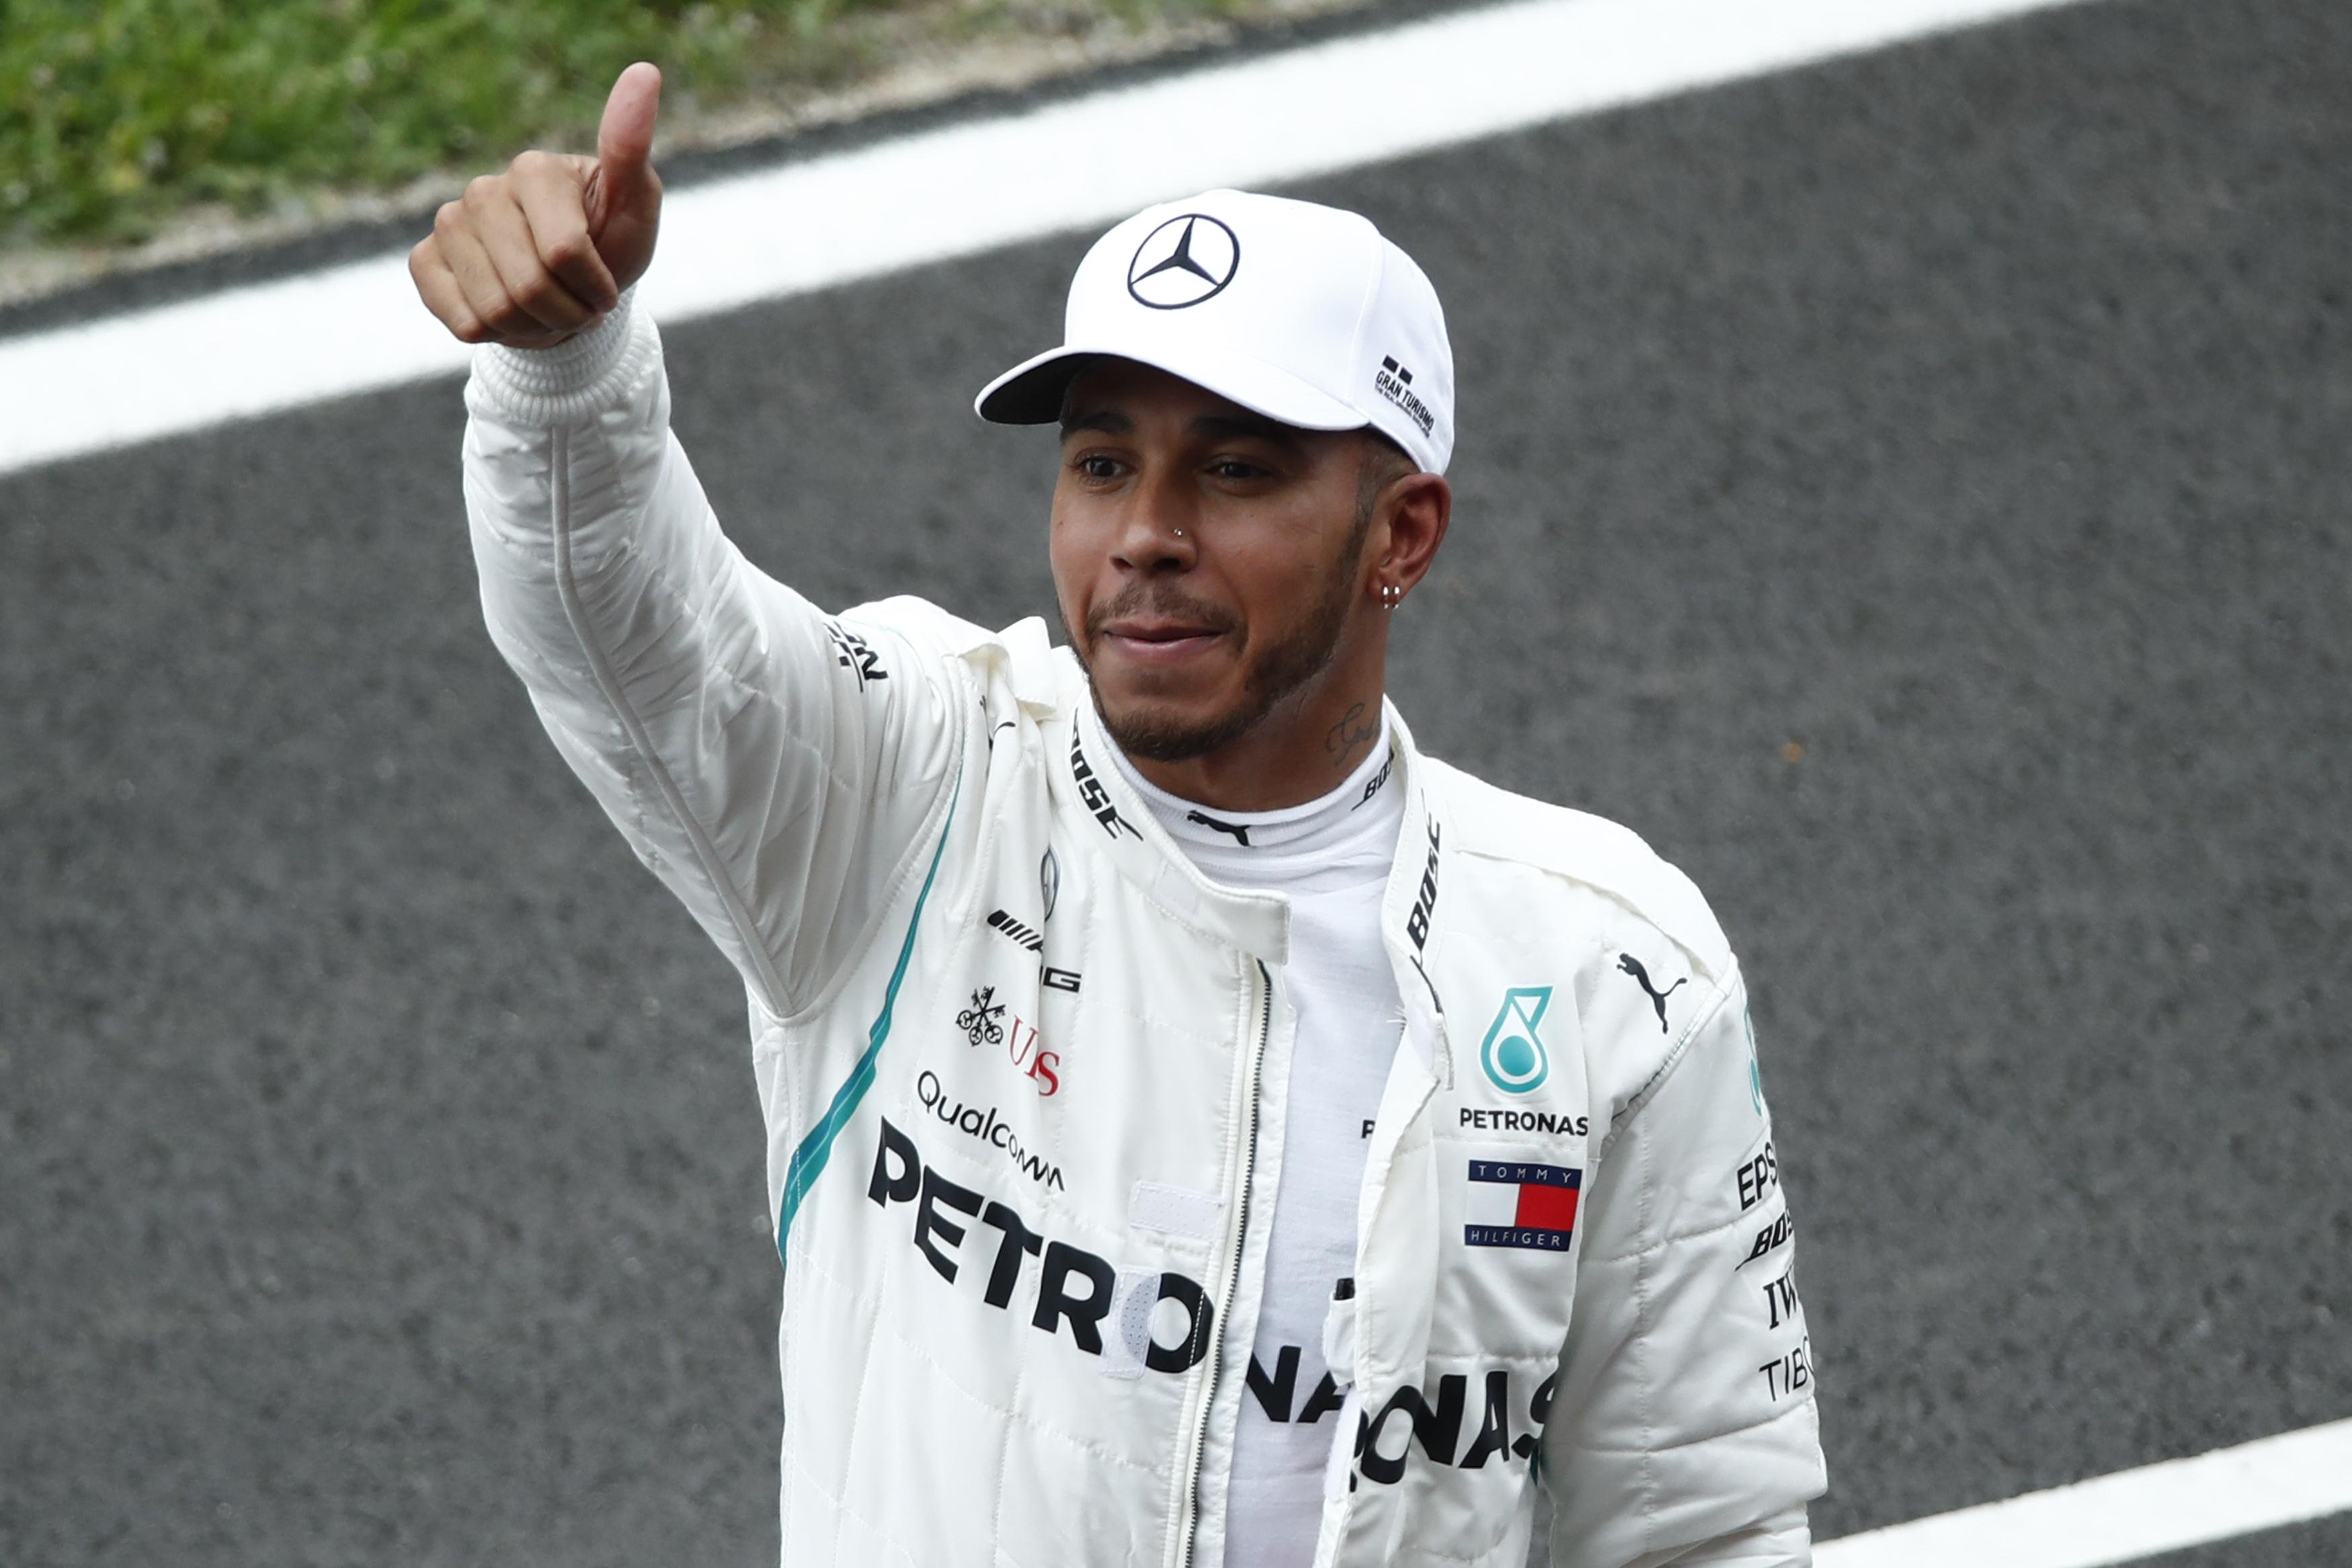 Lewis Hamilton is now 17 points clear in the race for the world title after his win in Barcelona